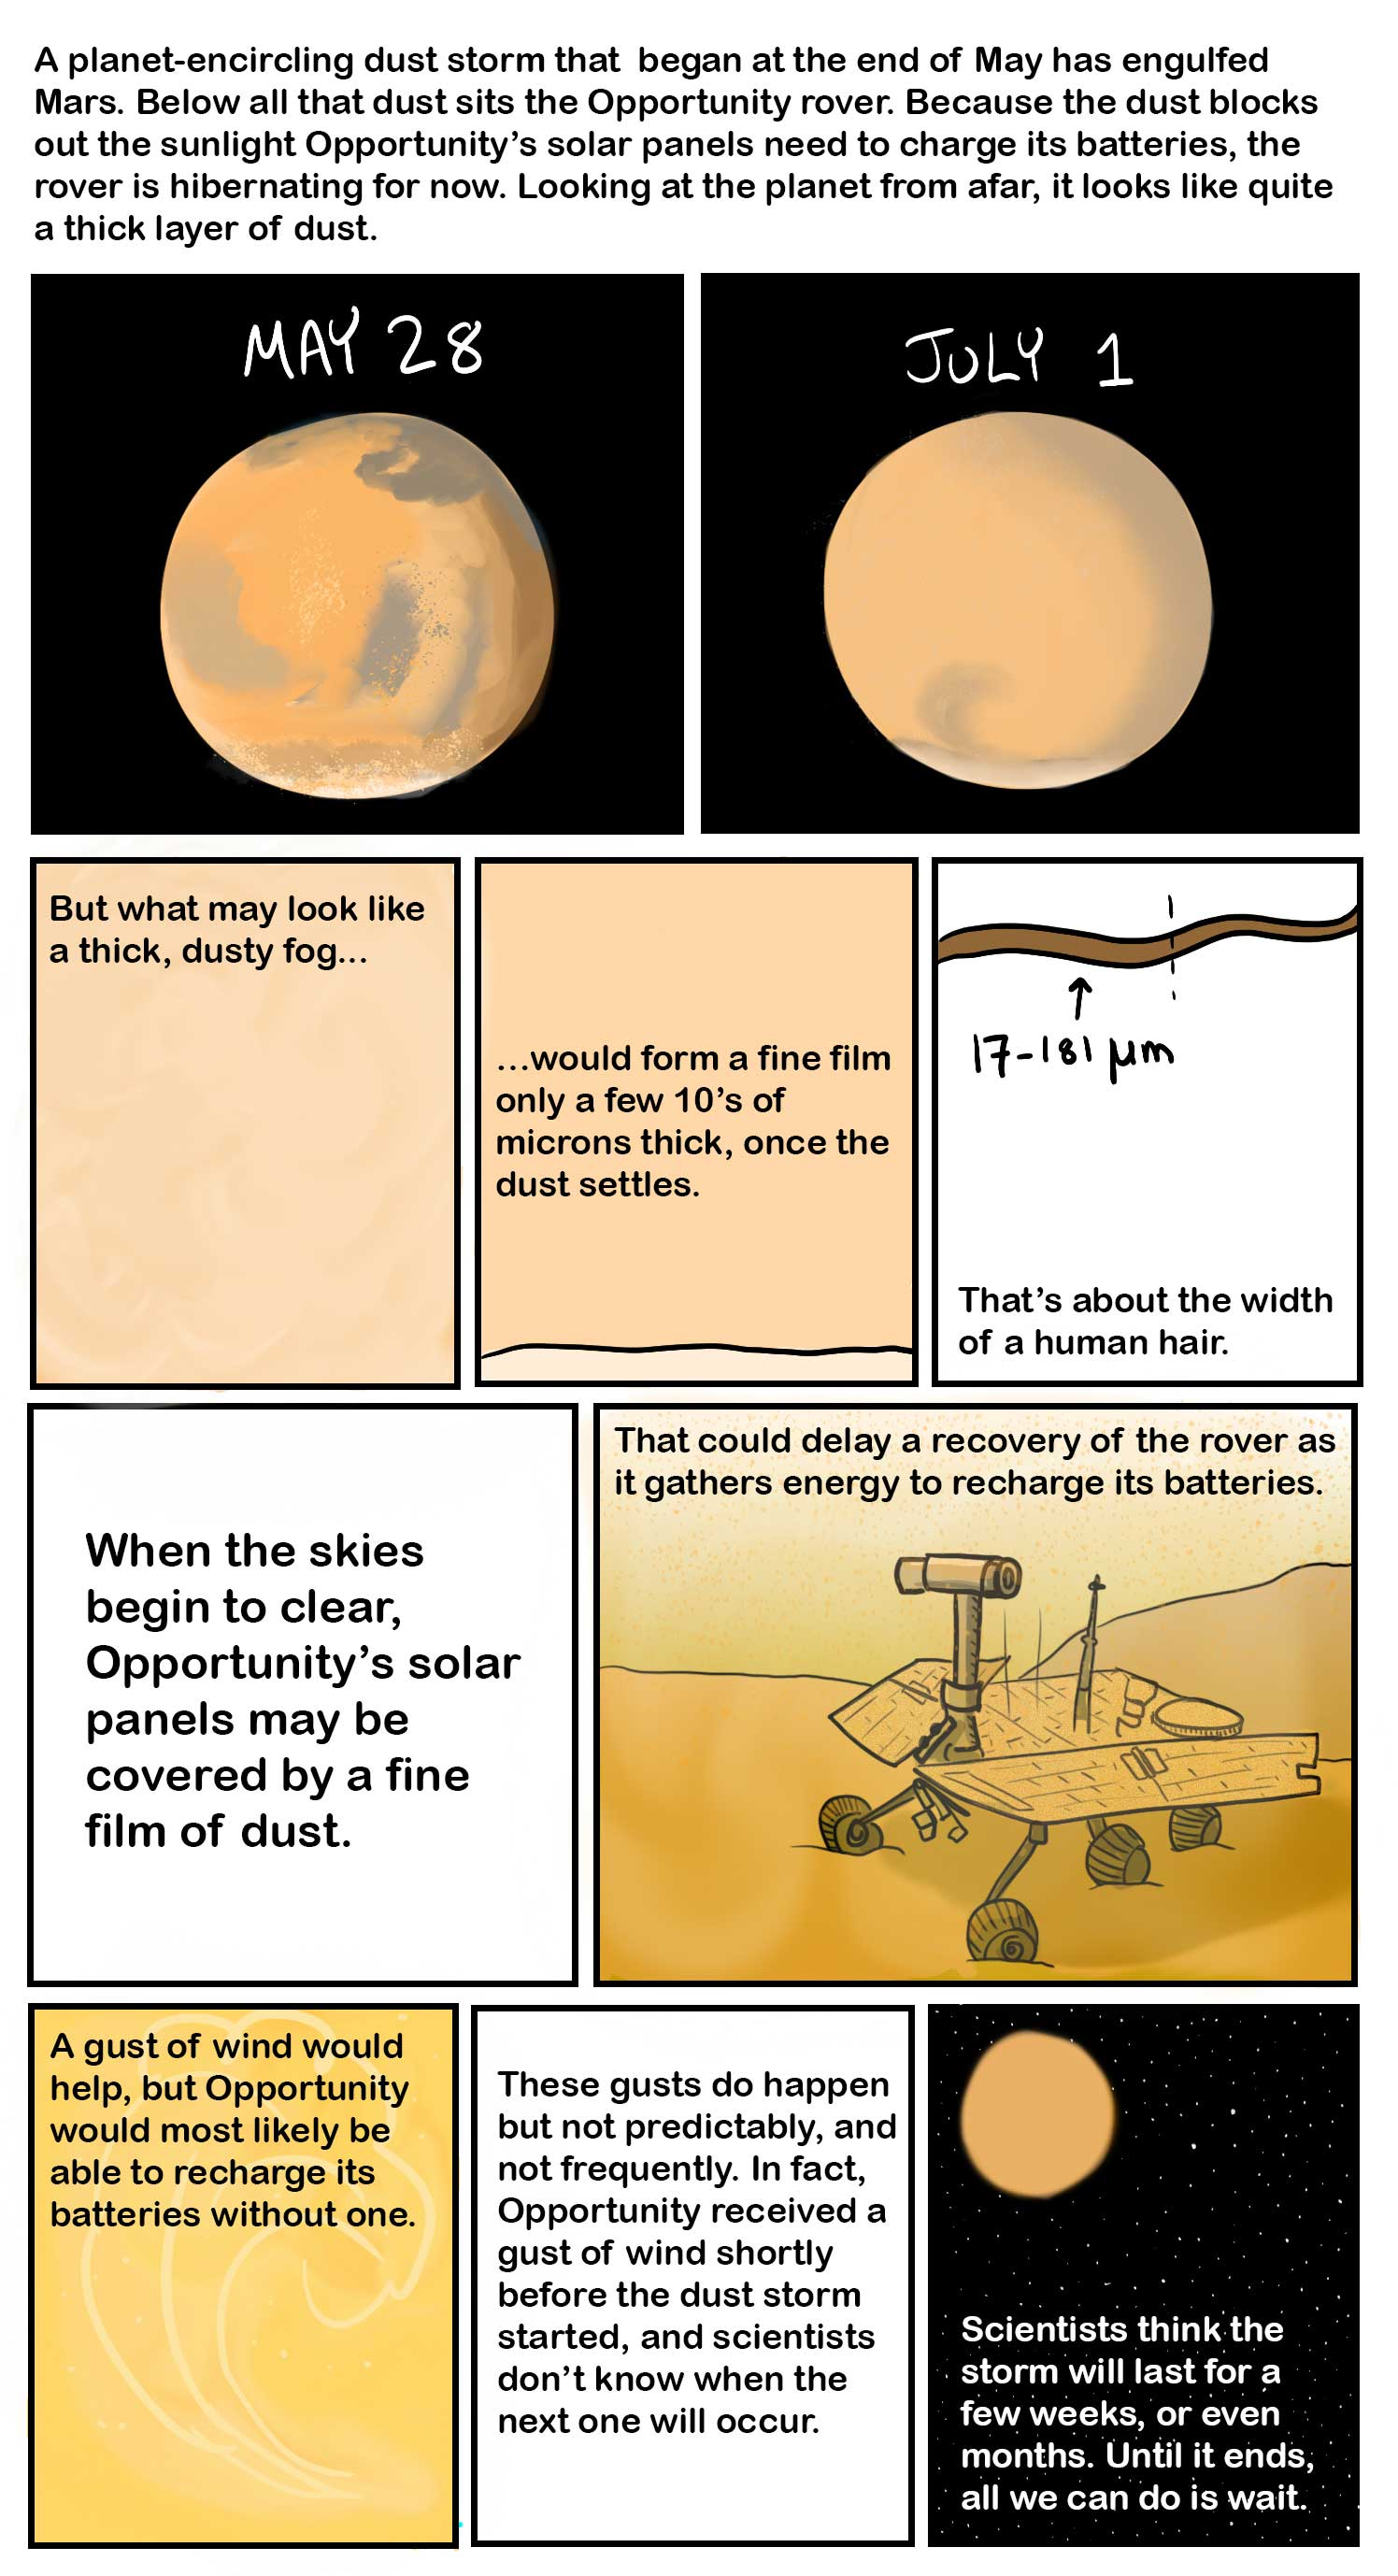 Illustrated story about dust impact on Mars rover.